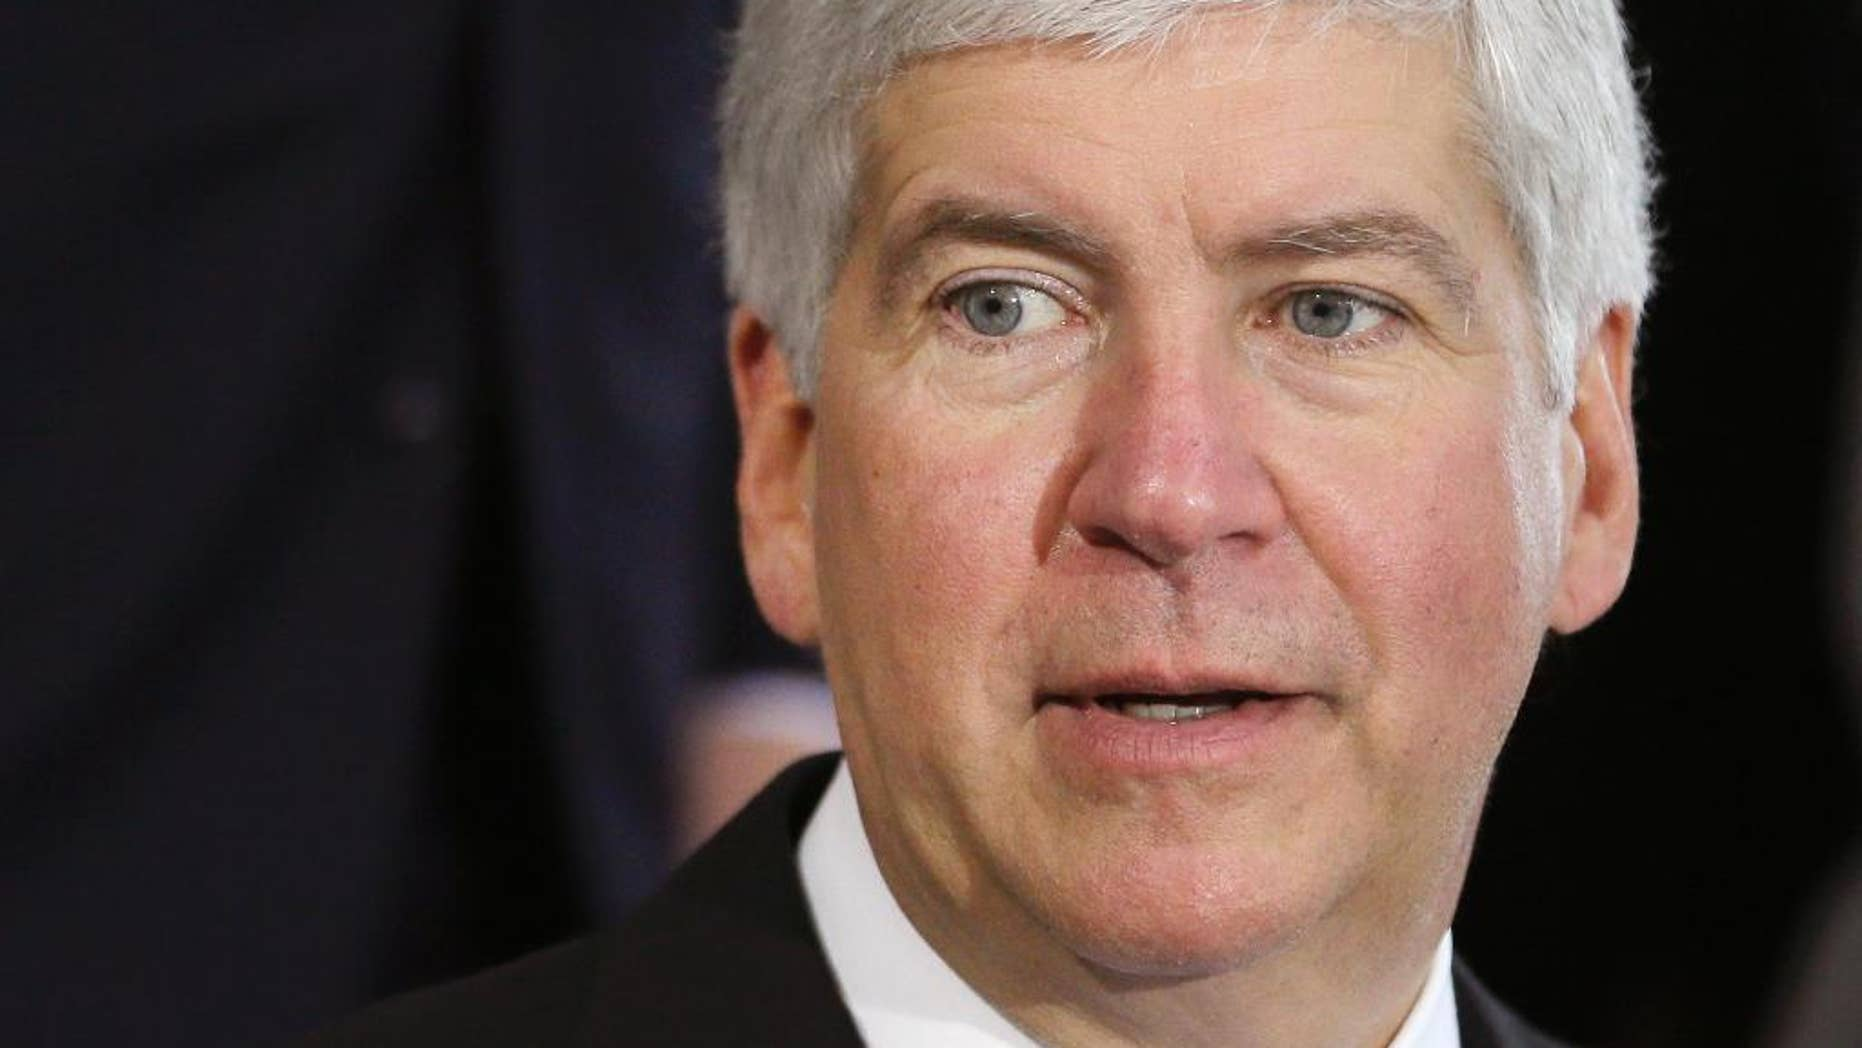 FILE - This June 20, 2014 file photo shows Michigan Gov. Rick Snyder during a ceremony in Detroit. Snyder on Thursday, June 11, 2015 signed a law letting private adoption agencies with state contracts decline to participate in referrals against their religious beliefs, despite criticism that it amounts to government-sanctioned discrimination against gay couples. (AP Photo/Carlos Osorio, file)